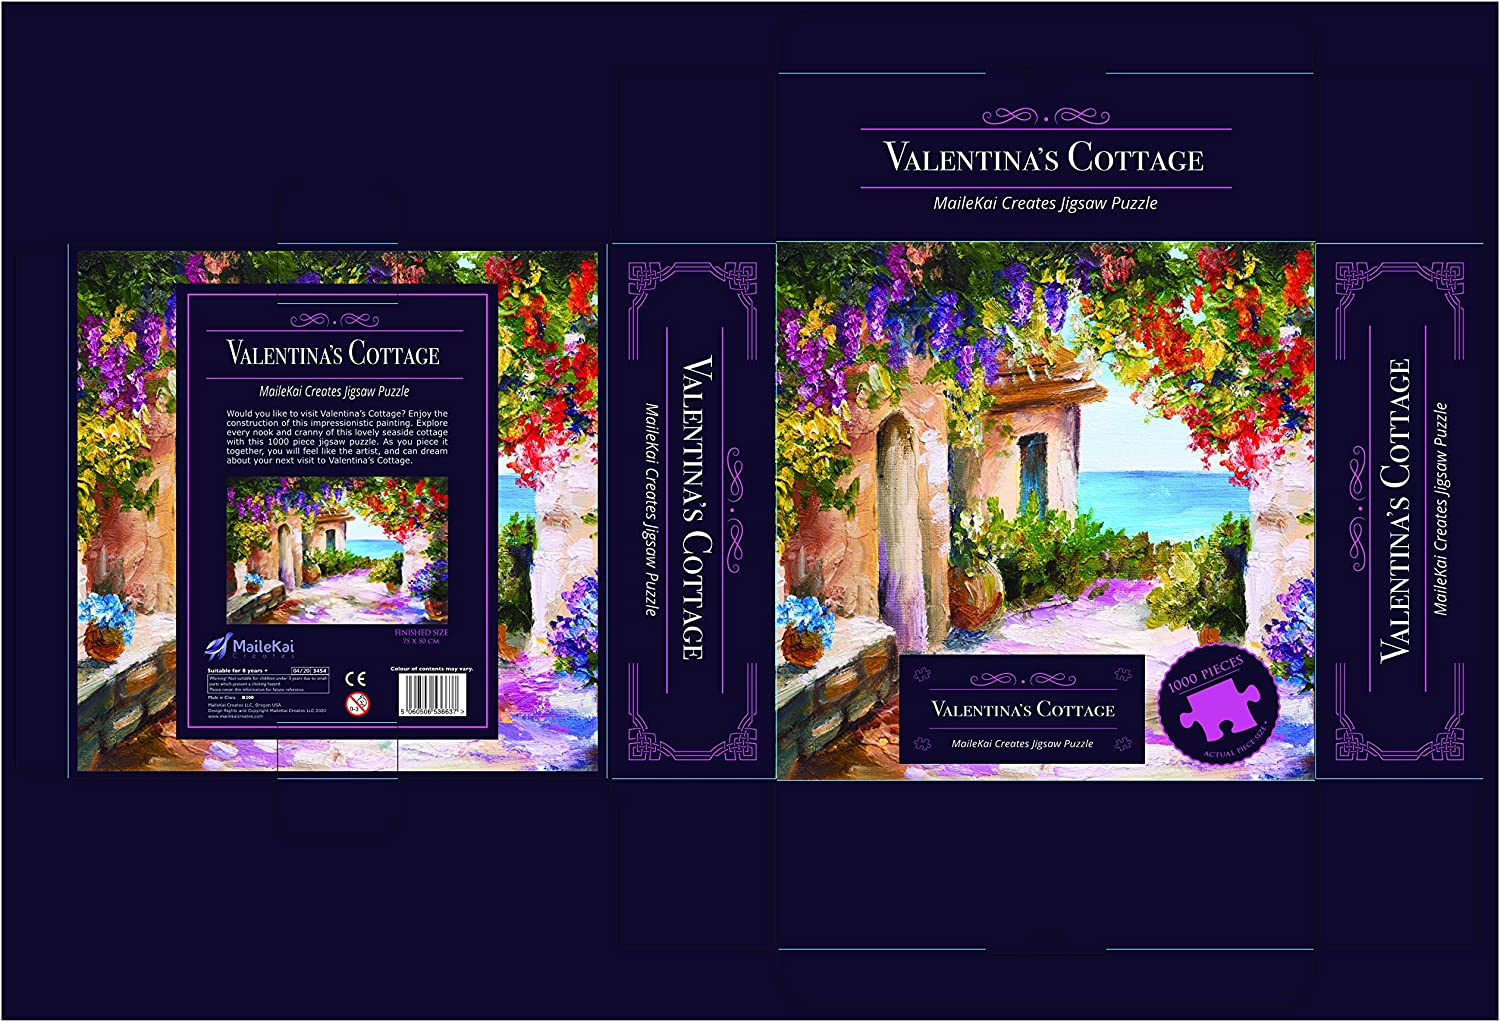 MaileKai Creates Valentina/'s Cottage 1000 Piece Jigsaw Puzzle for Kids Adults 20x30 inch Finished Size